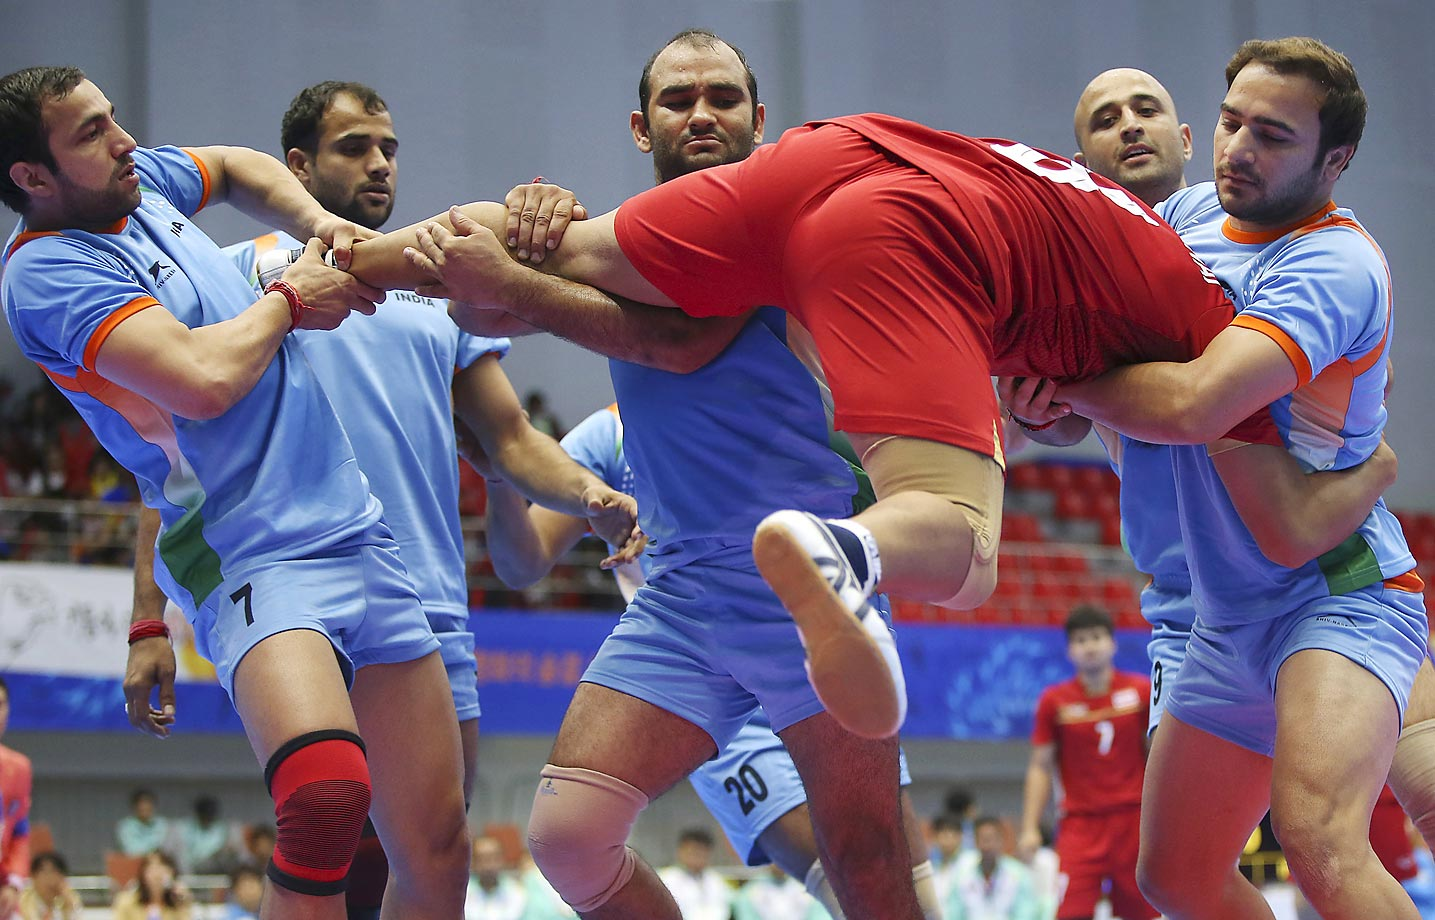 Thailand's Phuwanai Wannasaen, in red jersey, is caught by India team during the men's team kabbadi preliminary match at the 17th Asian Games in Incheon, Korea.